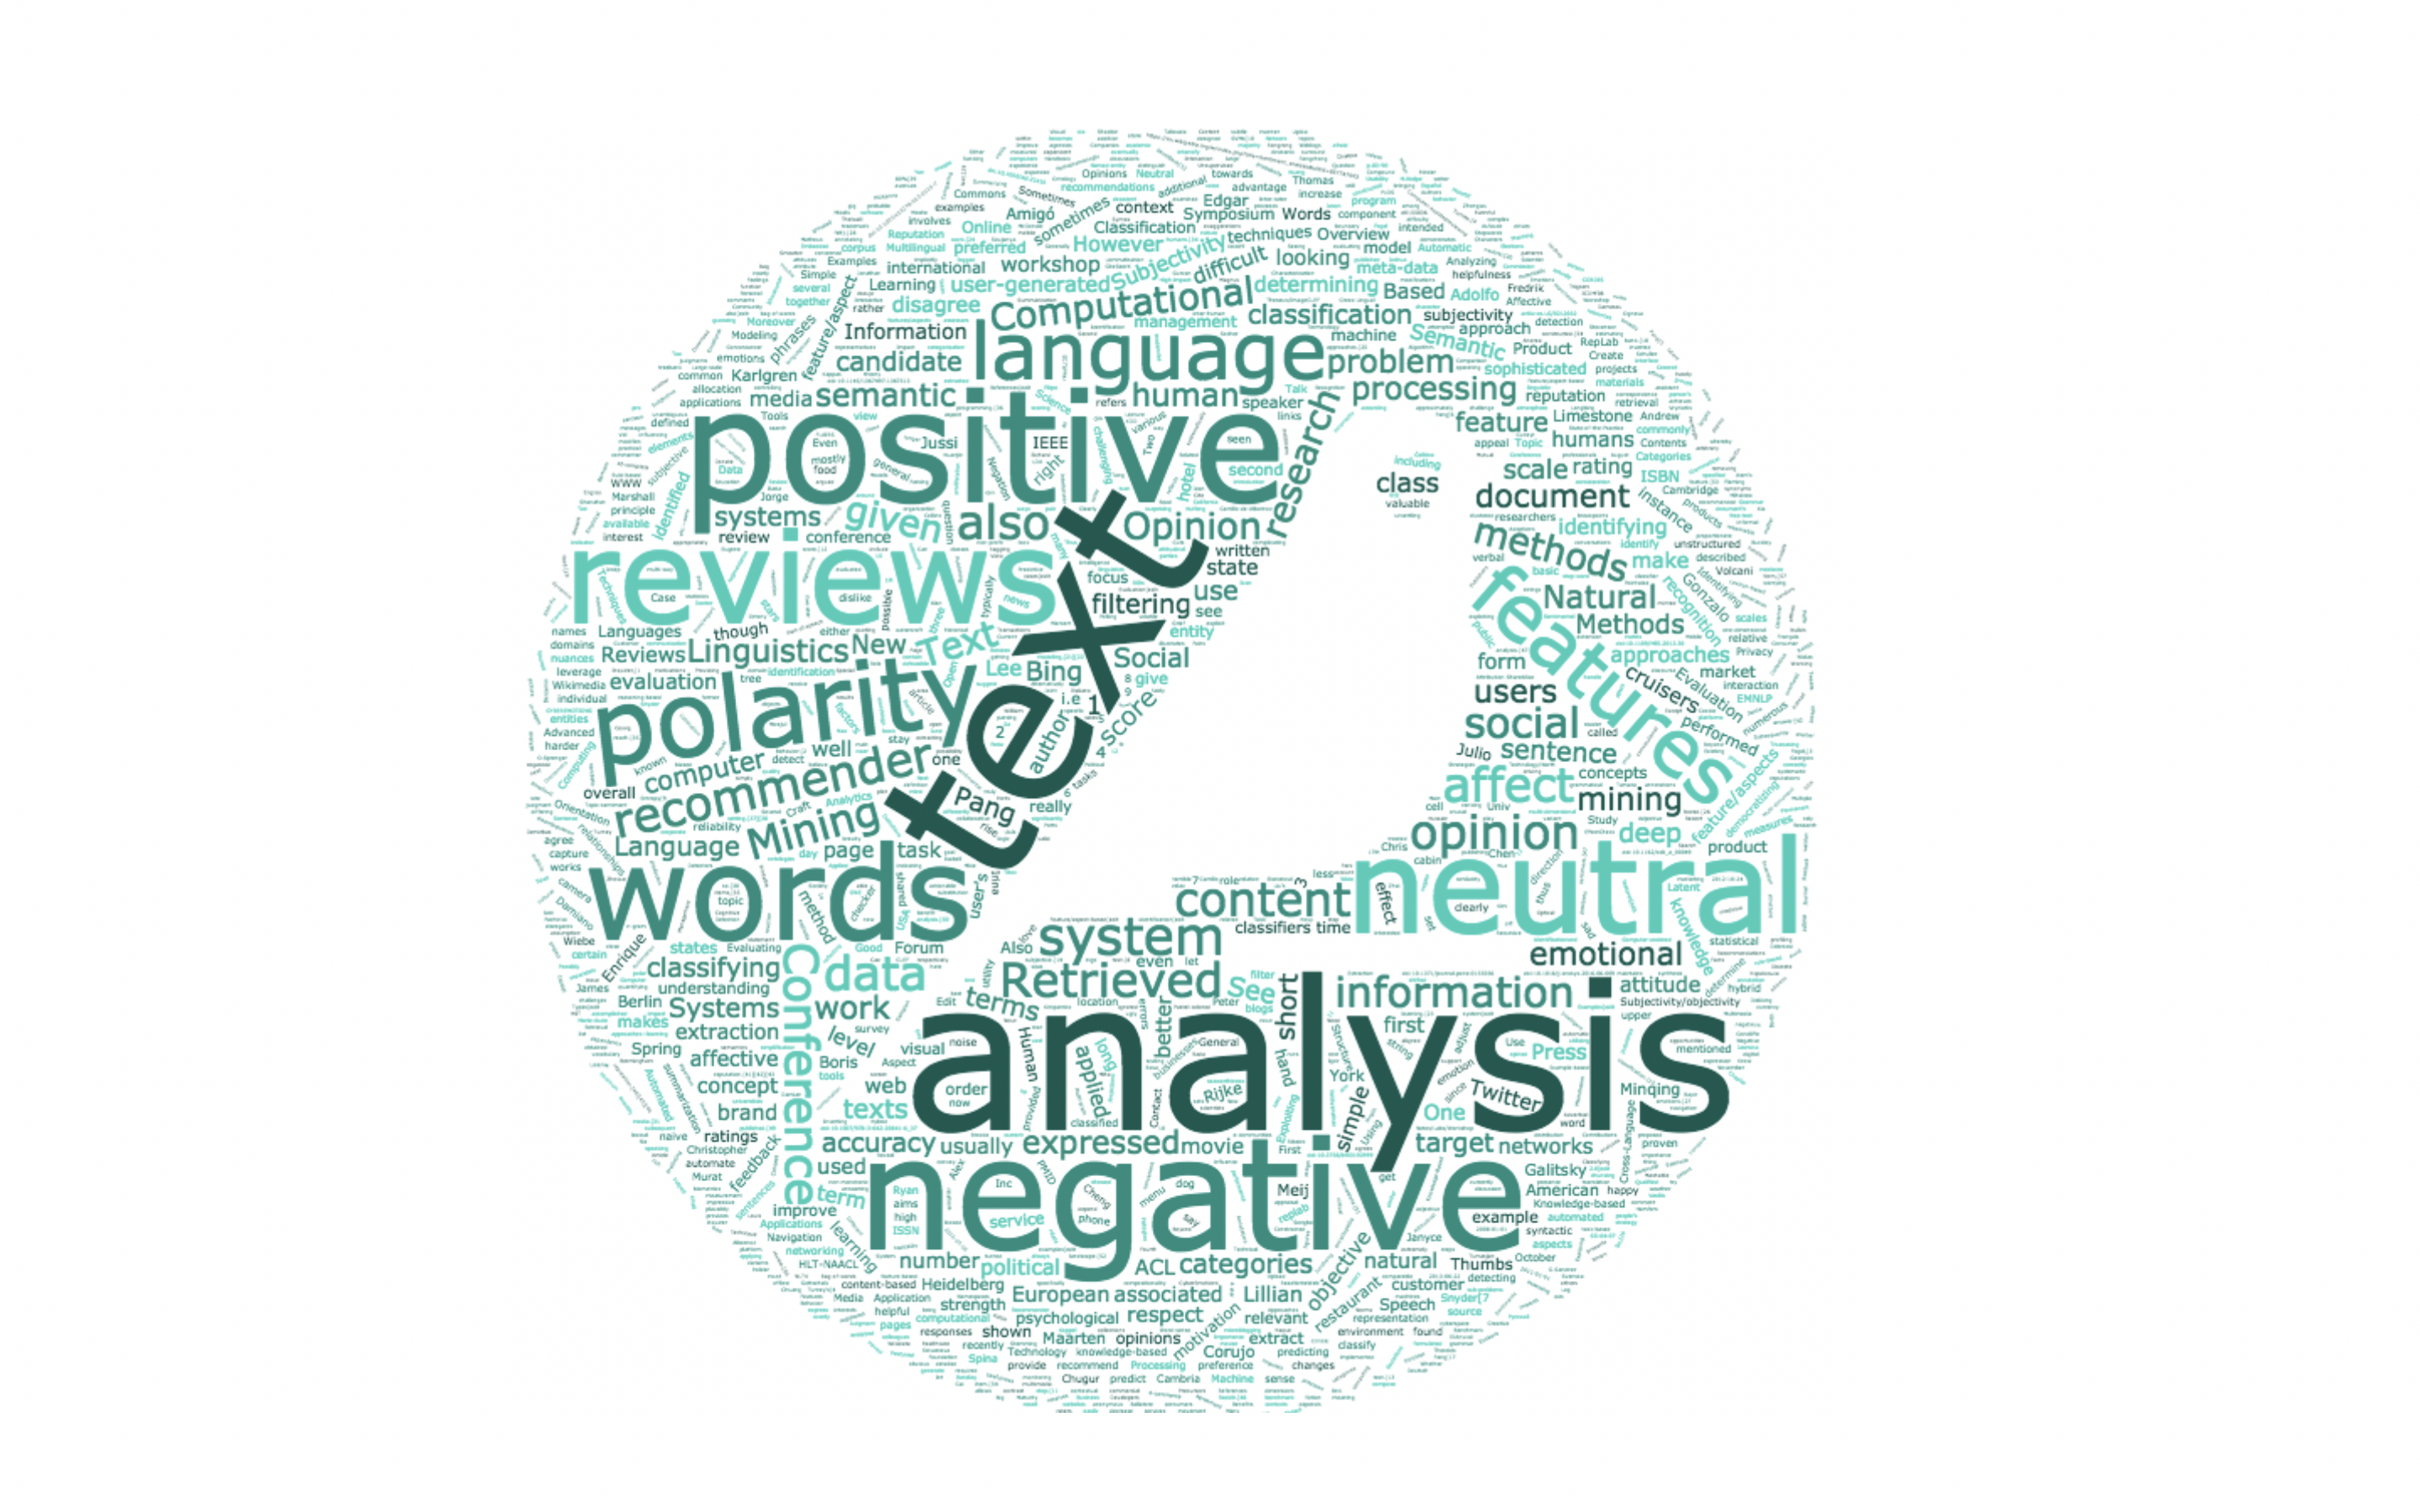 Word cloud of the sentiment analysis article on Wikipedia